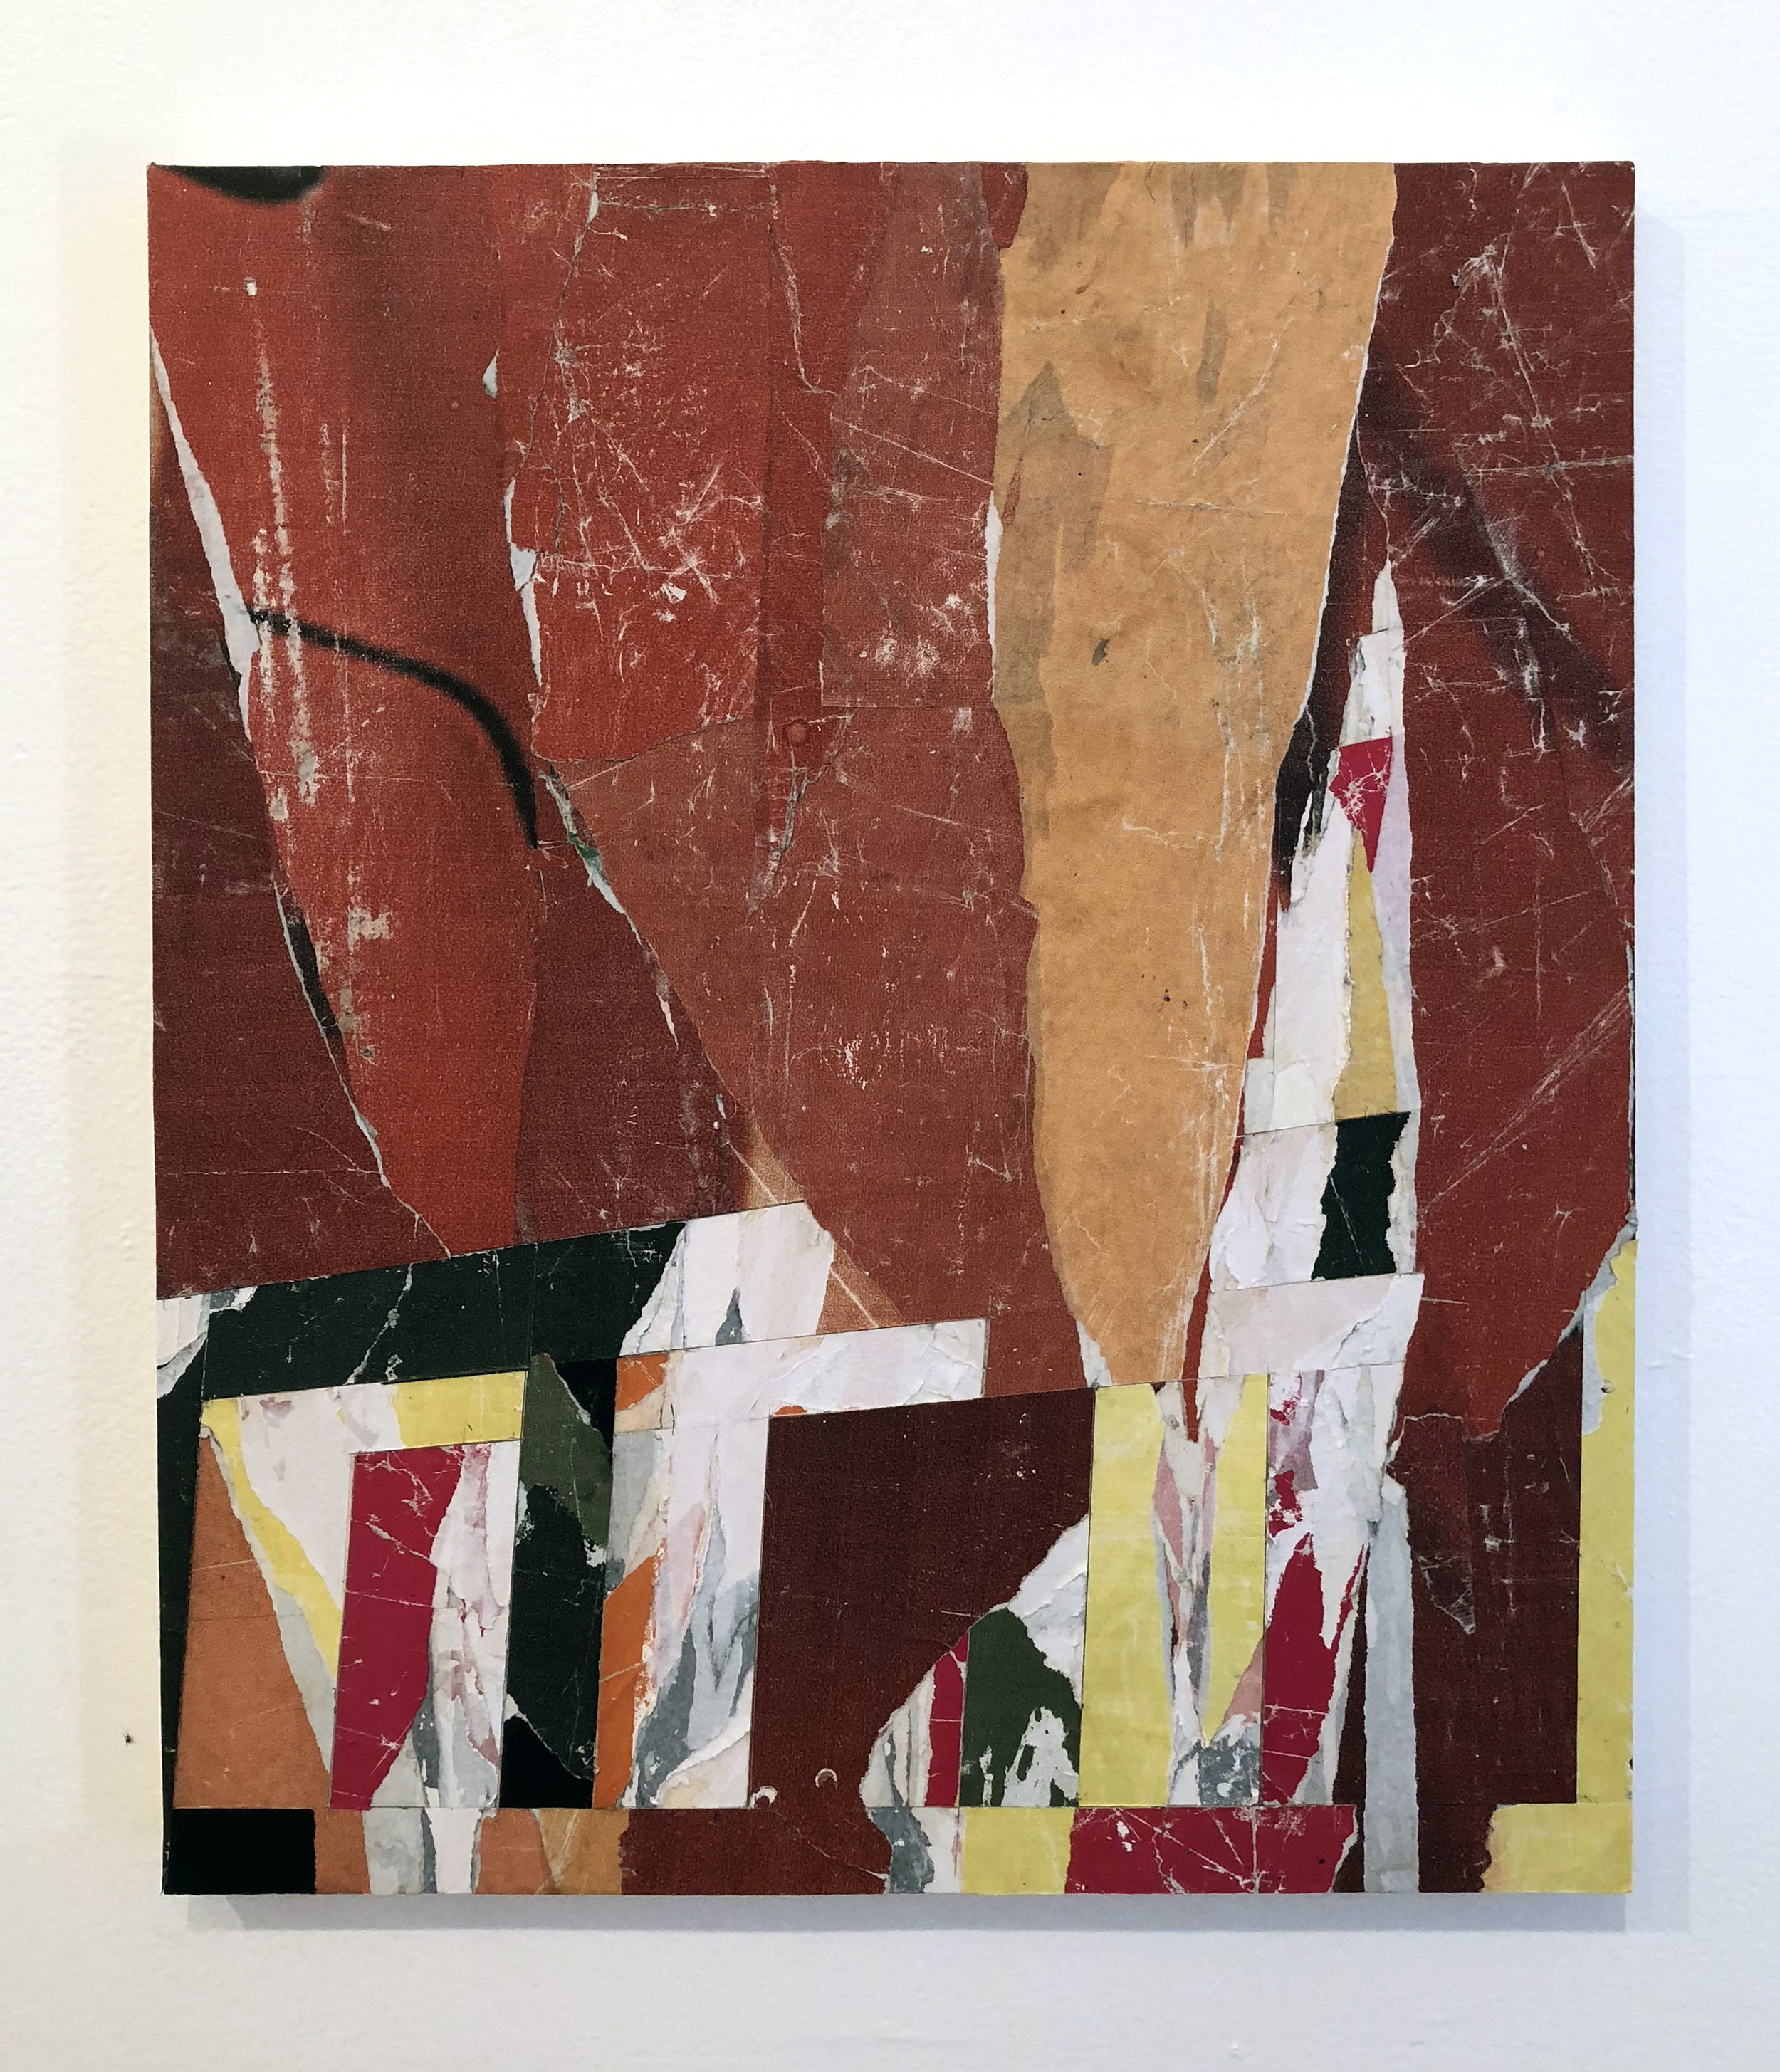 Untitled #R5, 2018, 20 x 16 in. Collage of found posters on wood panel SOLD